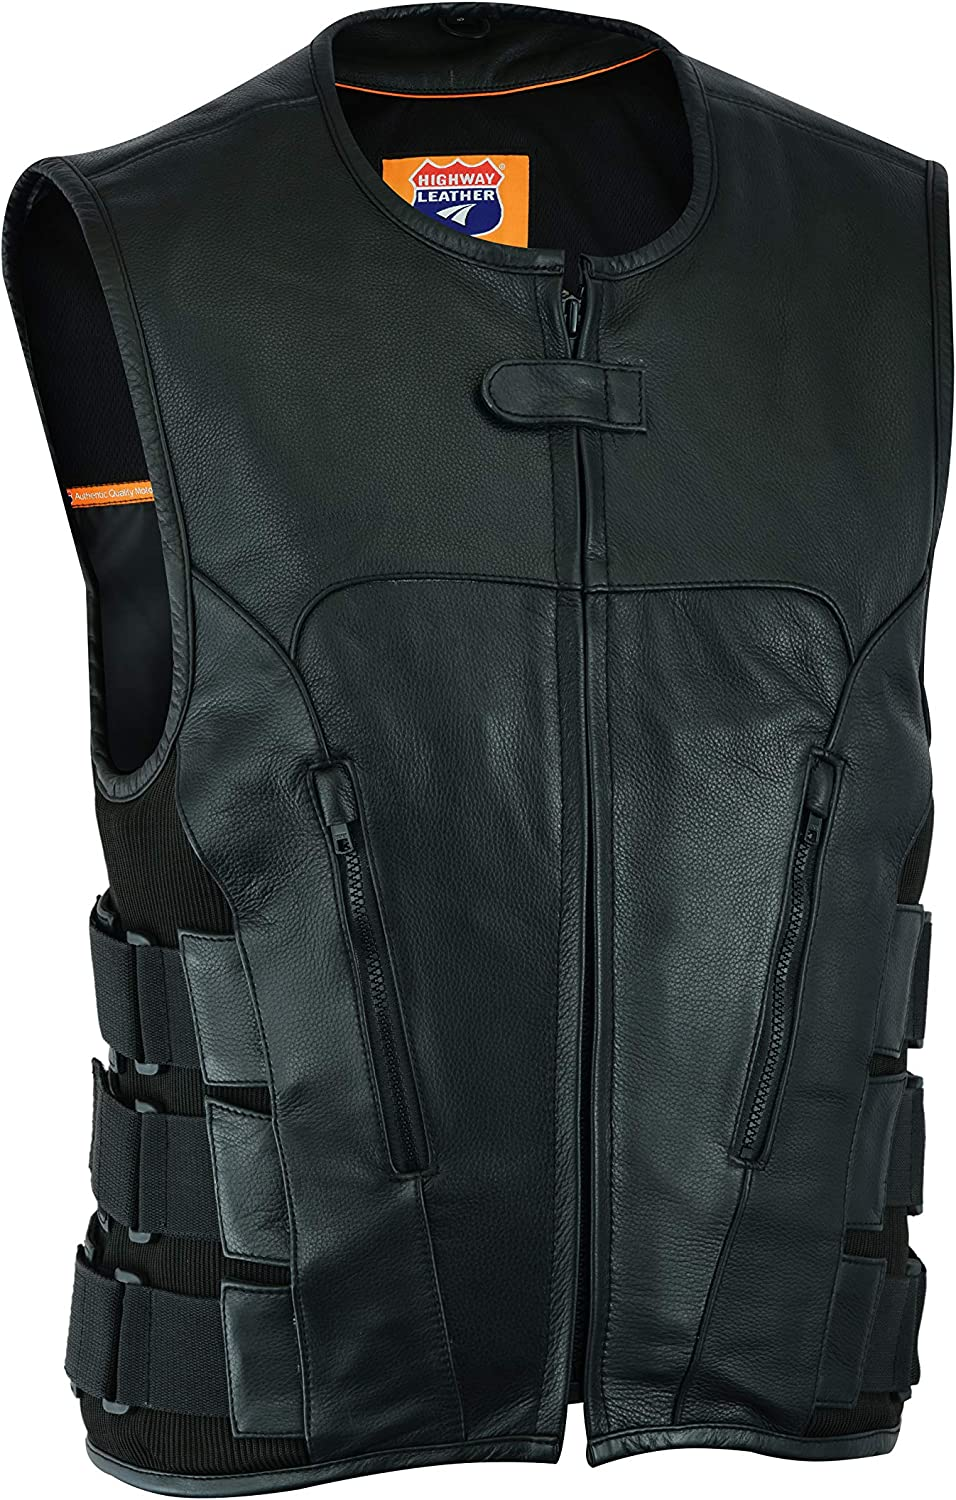 Highway Leather Men Motorcycle Black Swat Style Leather Vest